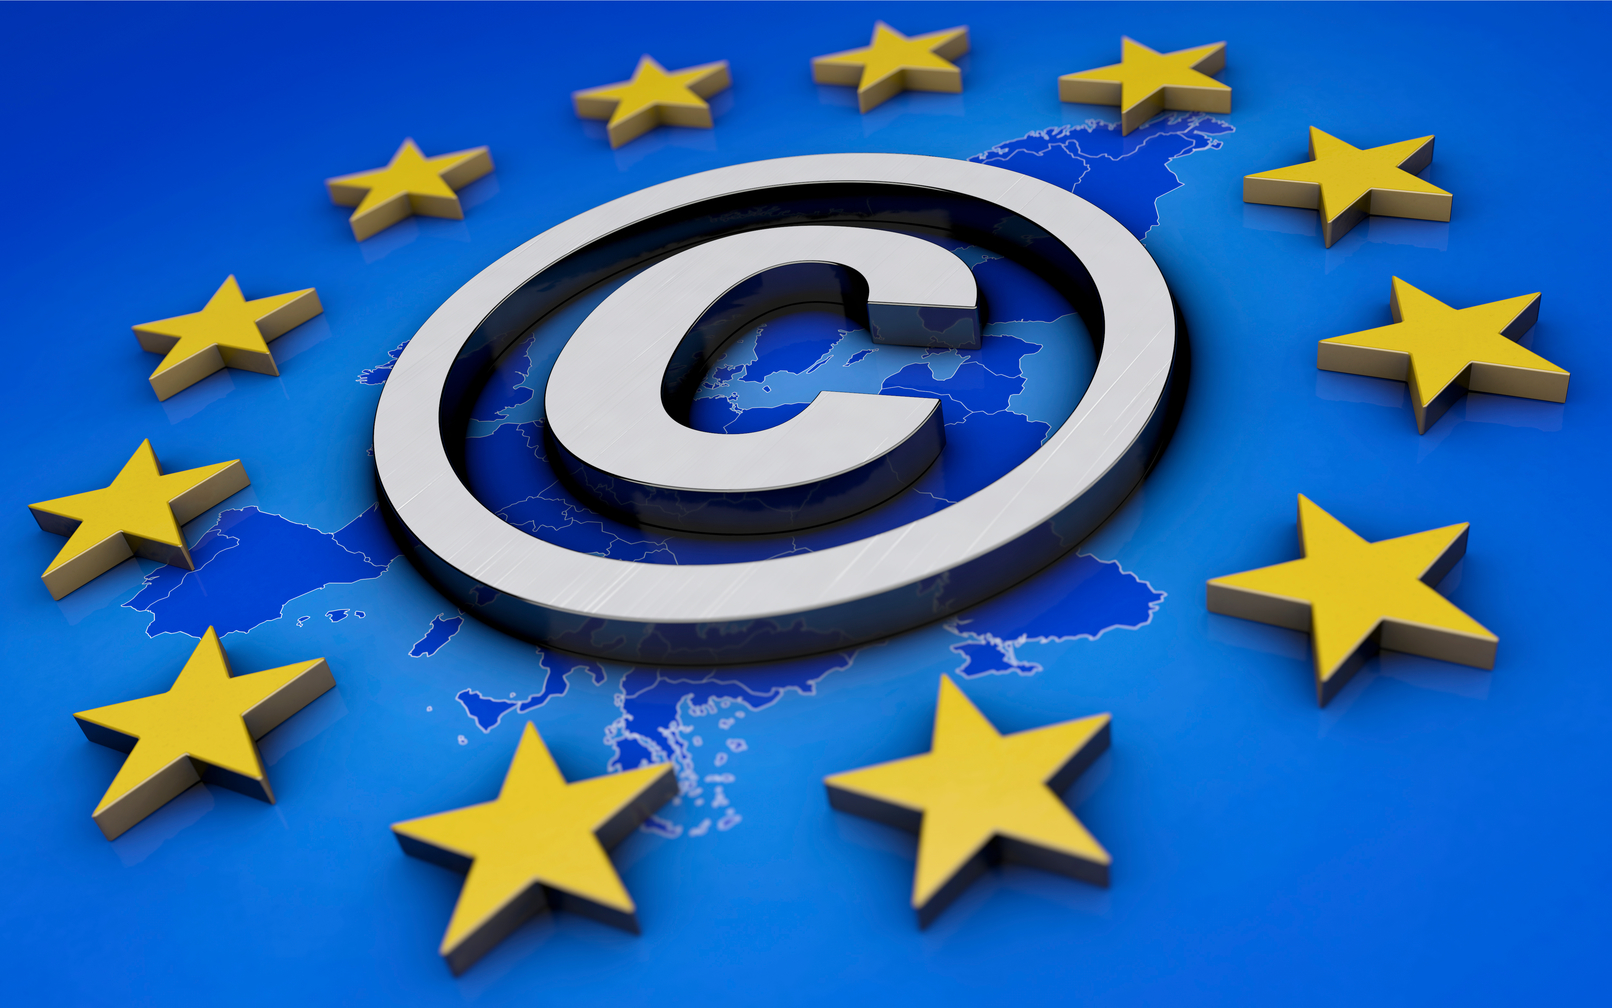 The European Union Passes Controversial New Copyright Directive